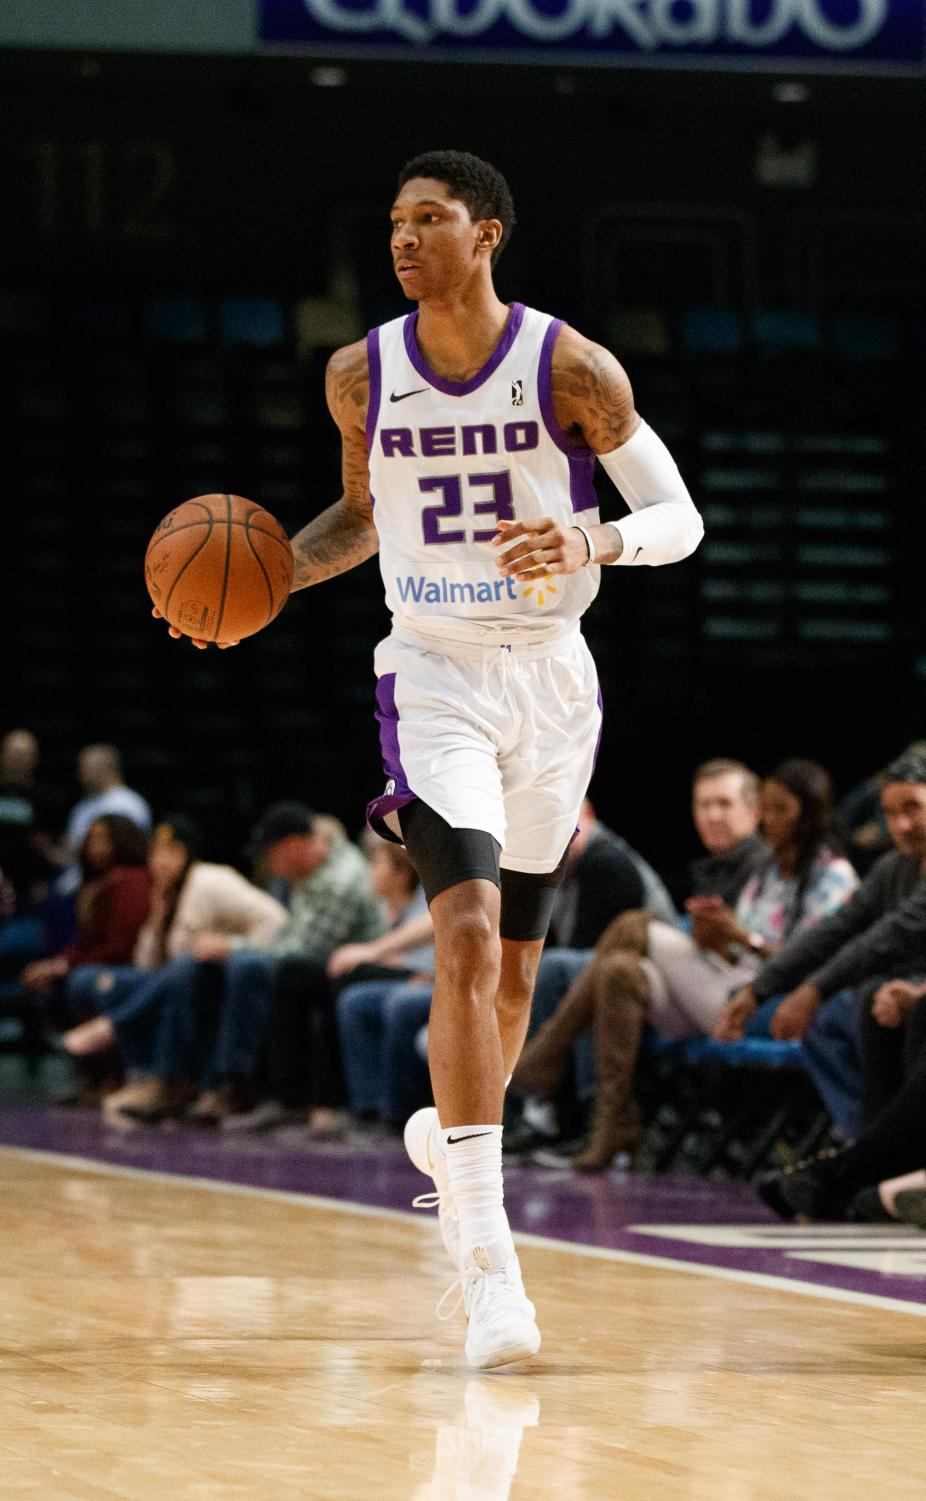 Reno Bighorns Guard Michael Bethea during the NBA G-League Basketball game between the Reno Bighorns and the Memphis Hustle.  Photo courtesy of Michael Bethea